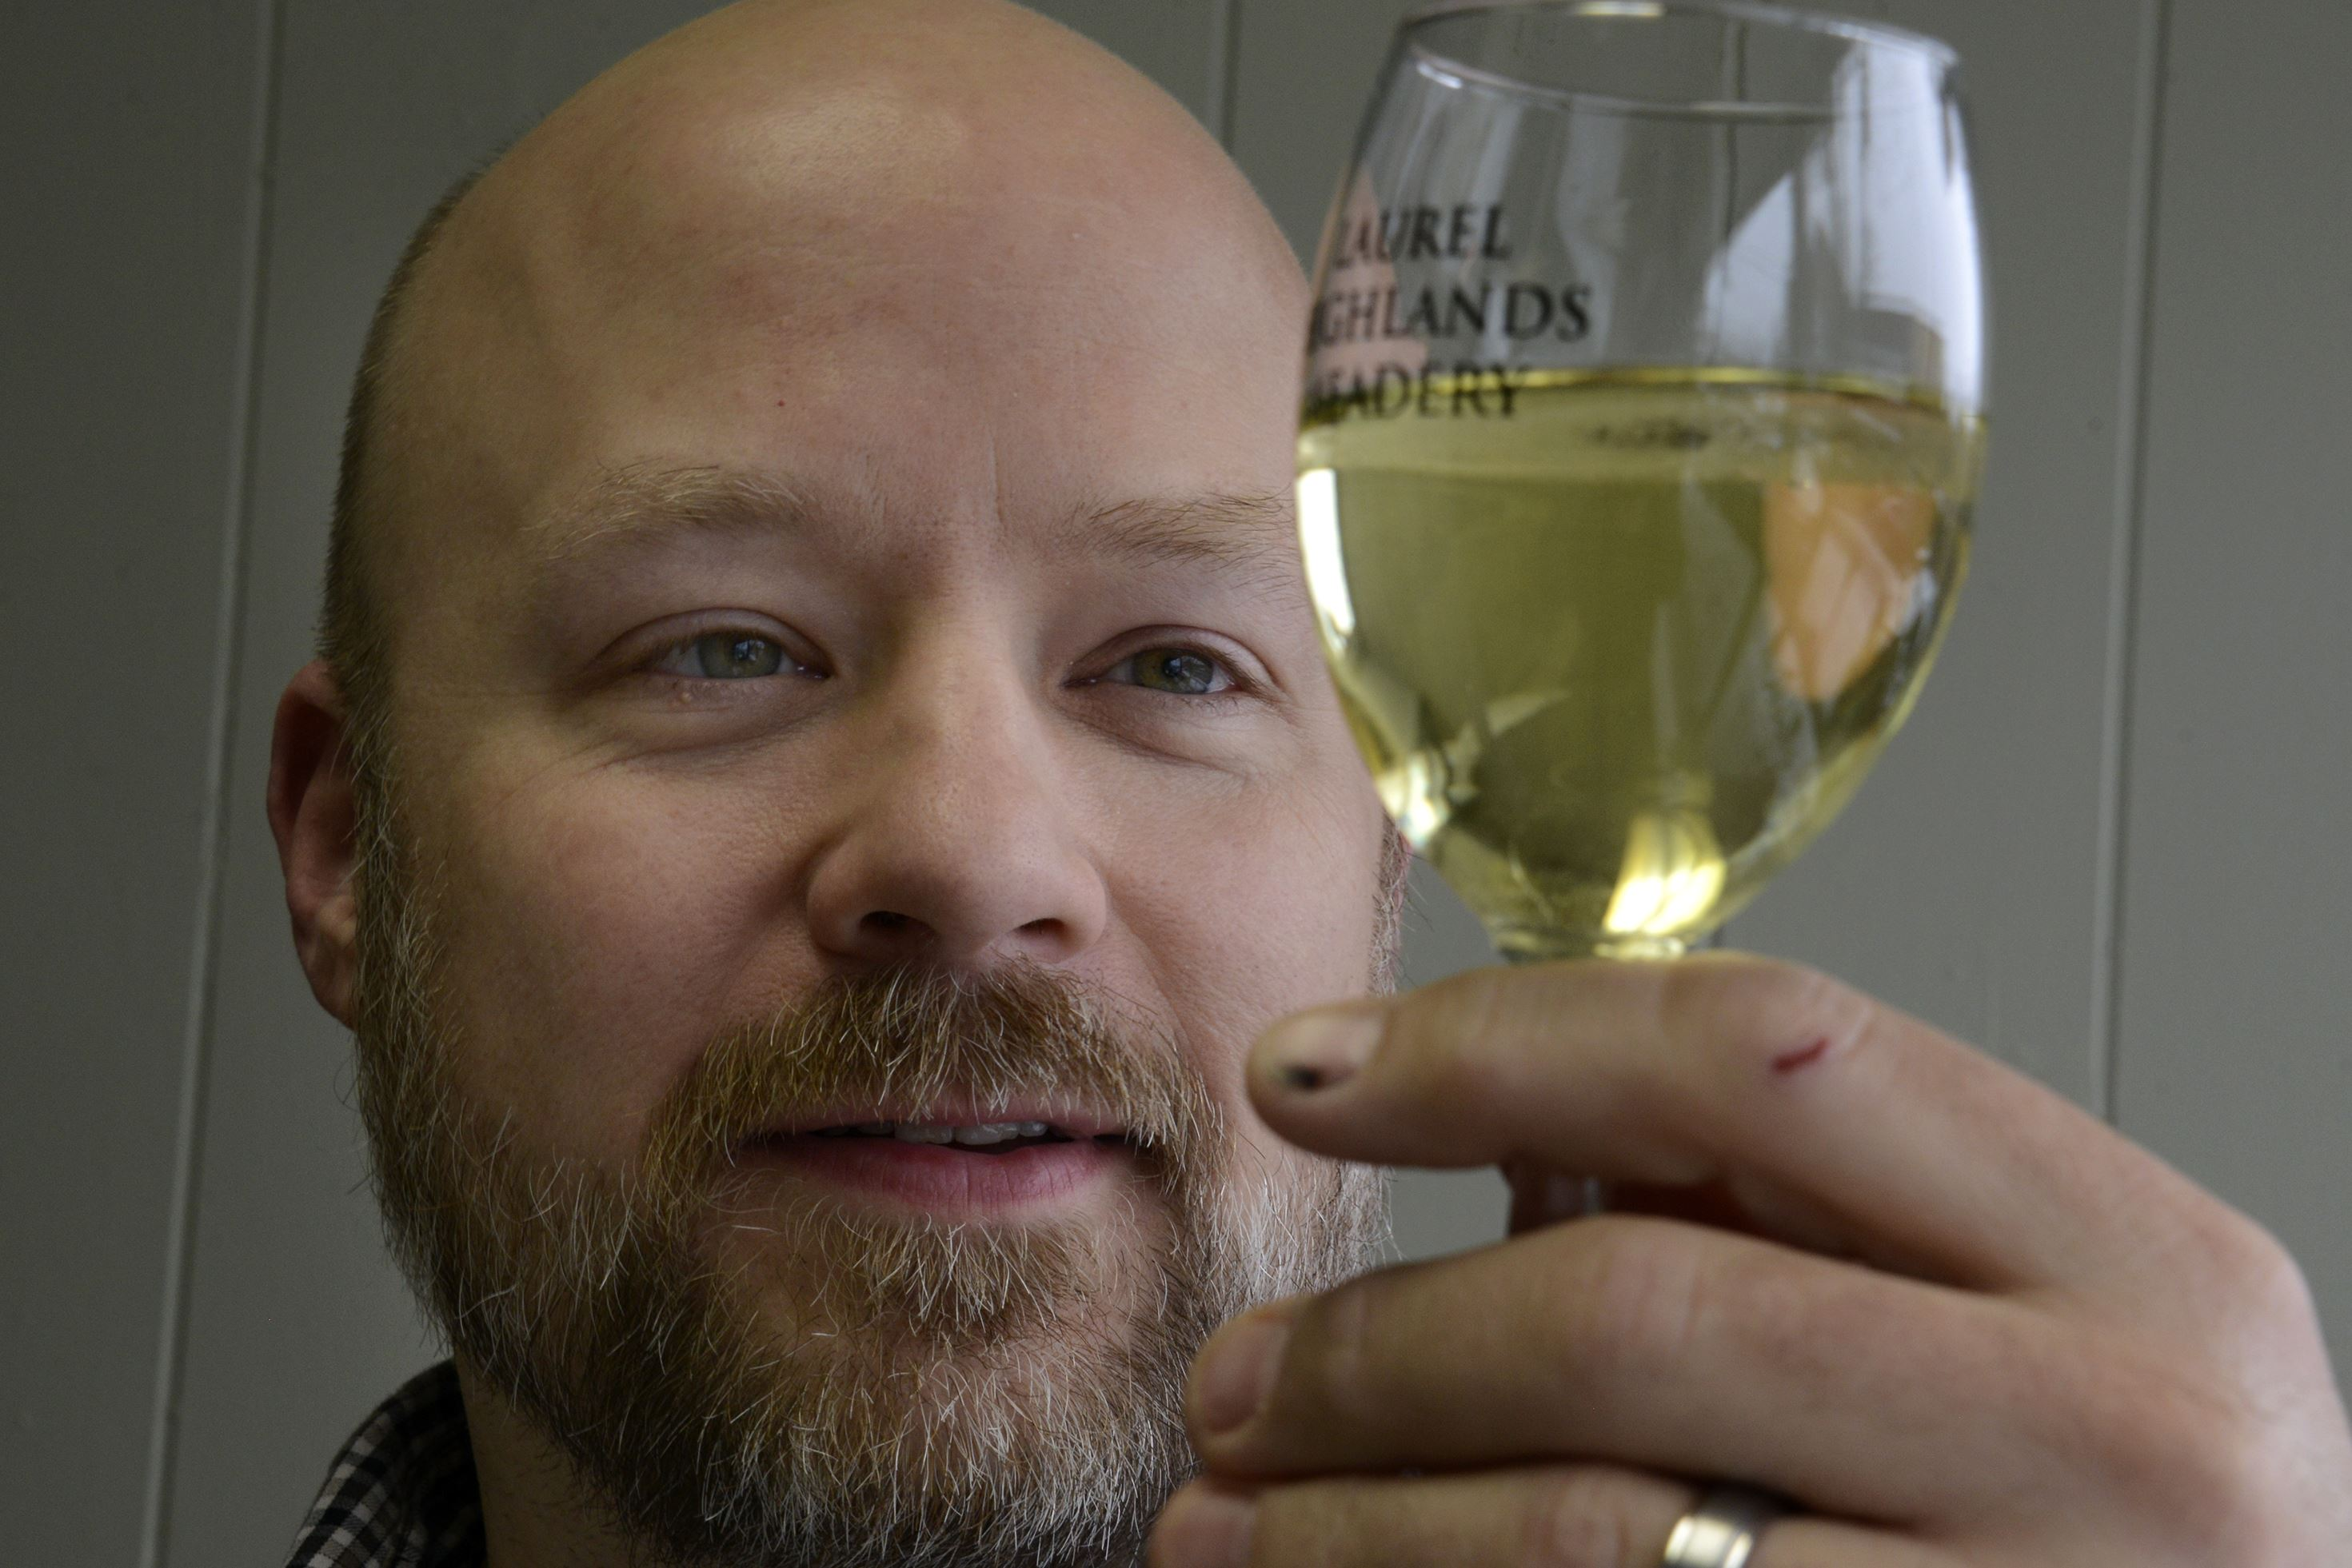 20160209dsMeaderyMag06-5 Matt Falenski looks at some of his Laurel Highlands Meadery traditional honey wine, in the light of his new shop in Irwin.